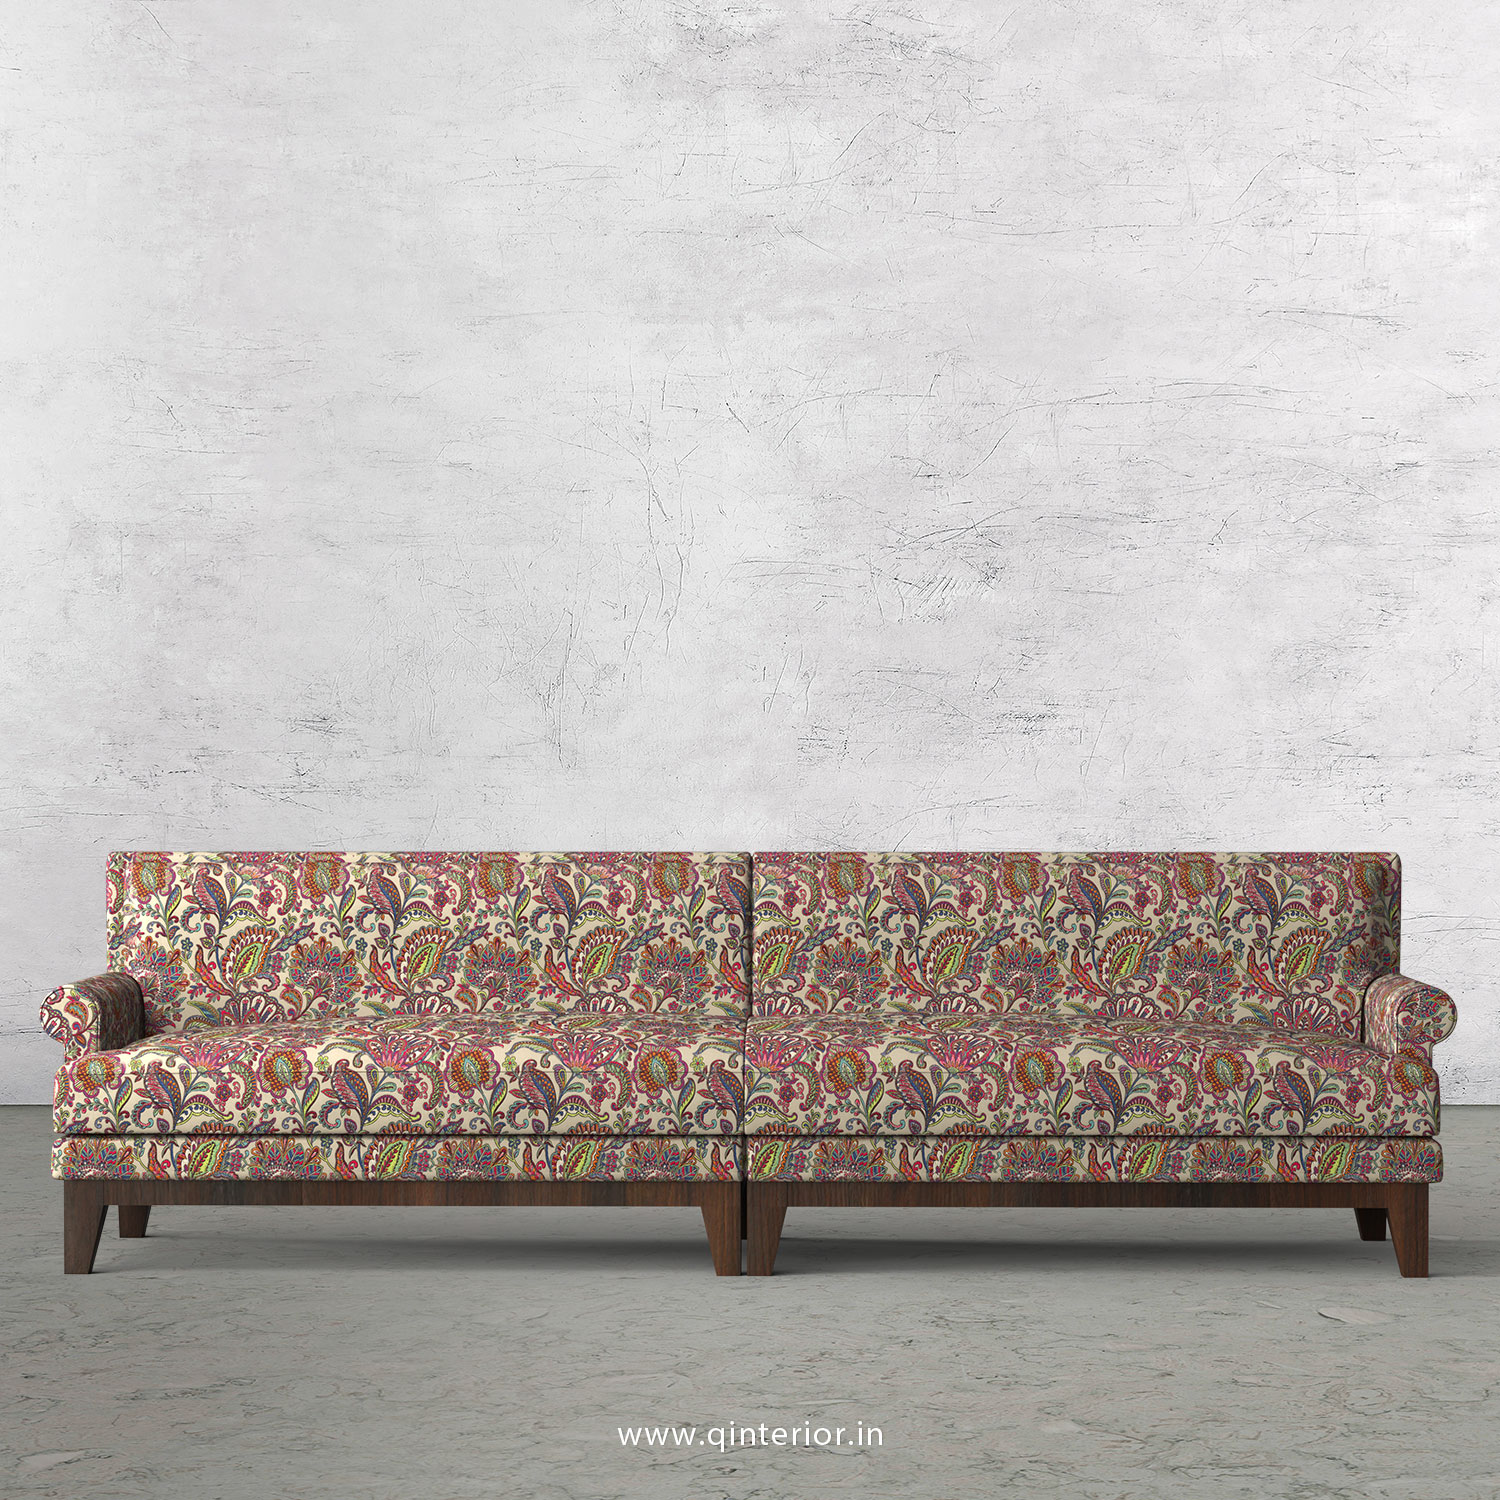 Aviana 4 Seater Sofa in Bargello Fabric - SFA001 BG06